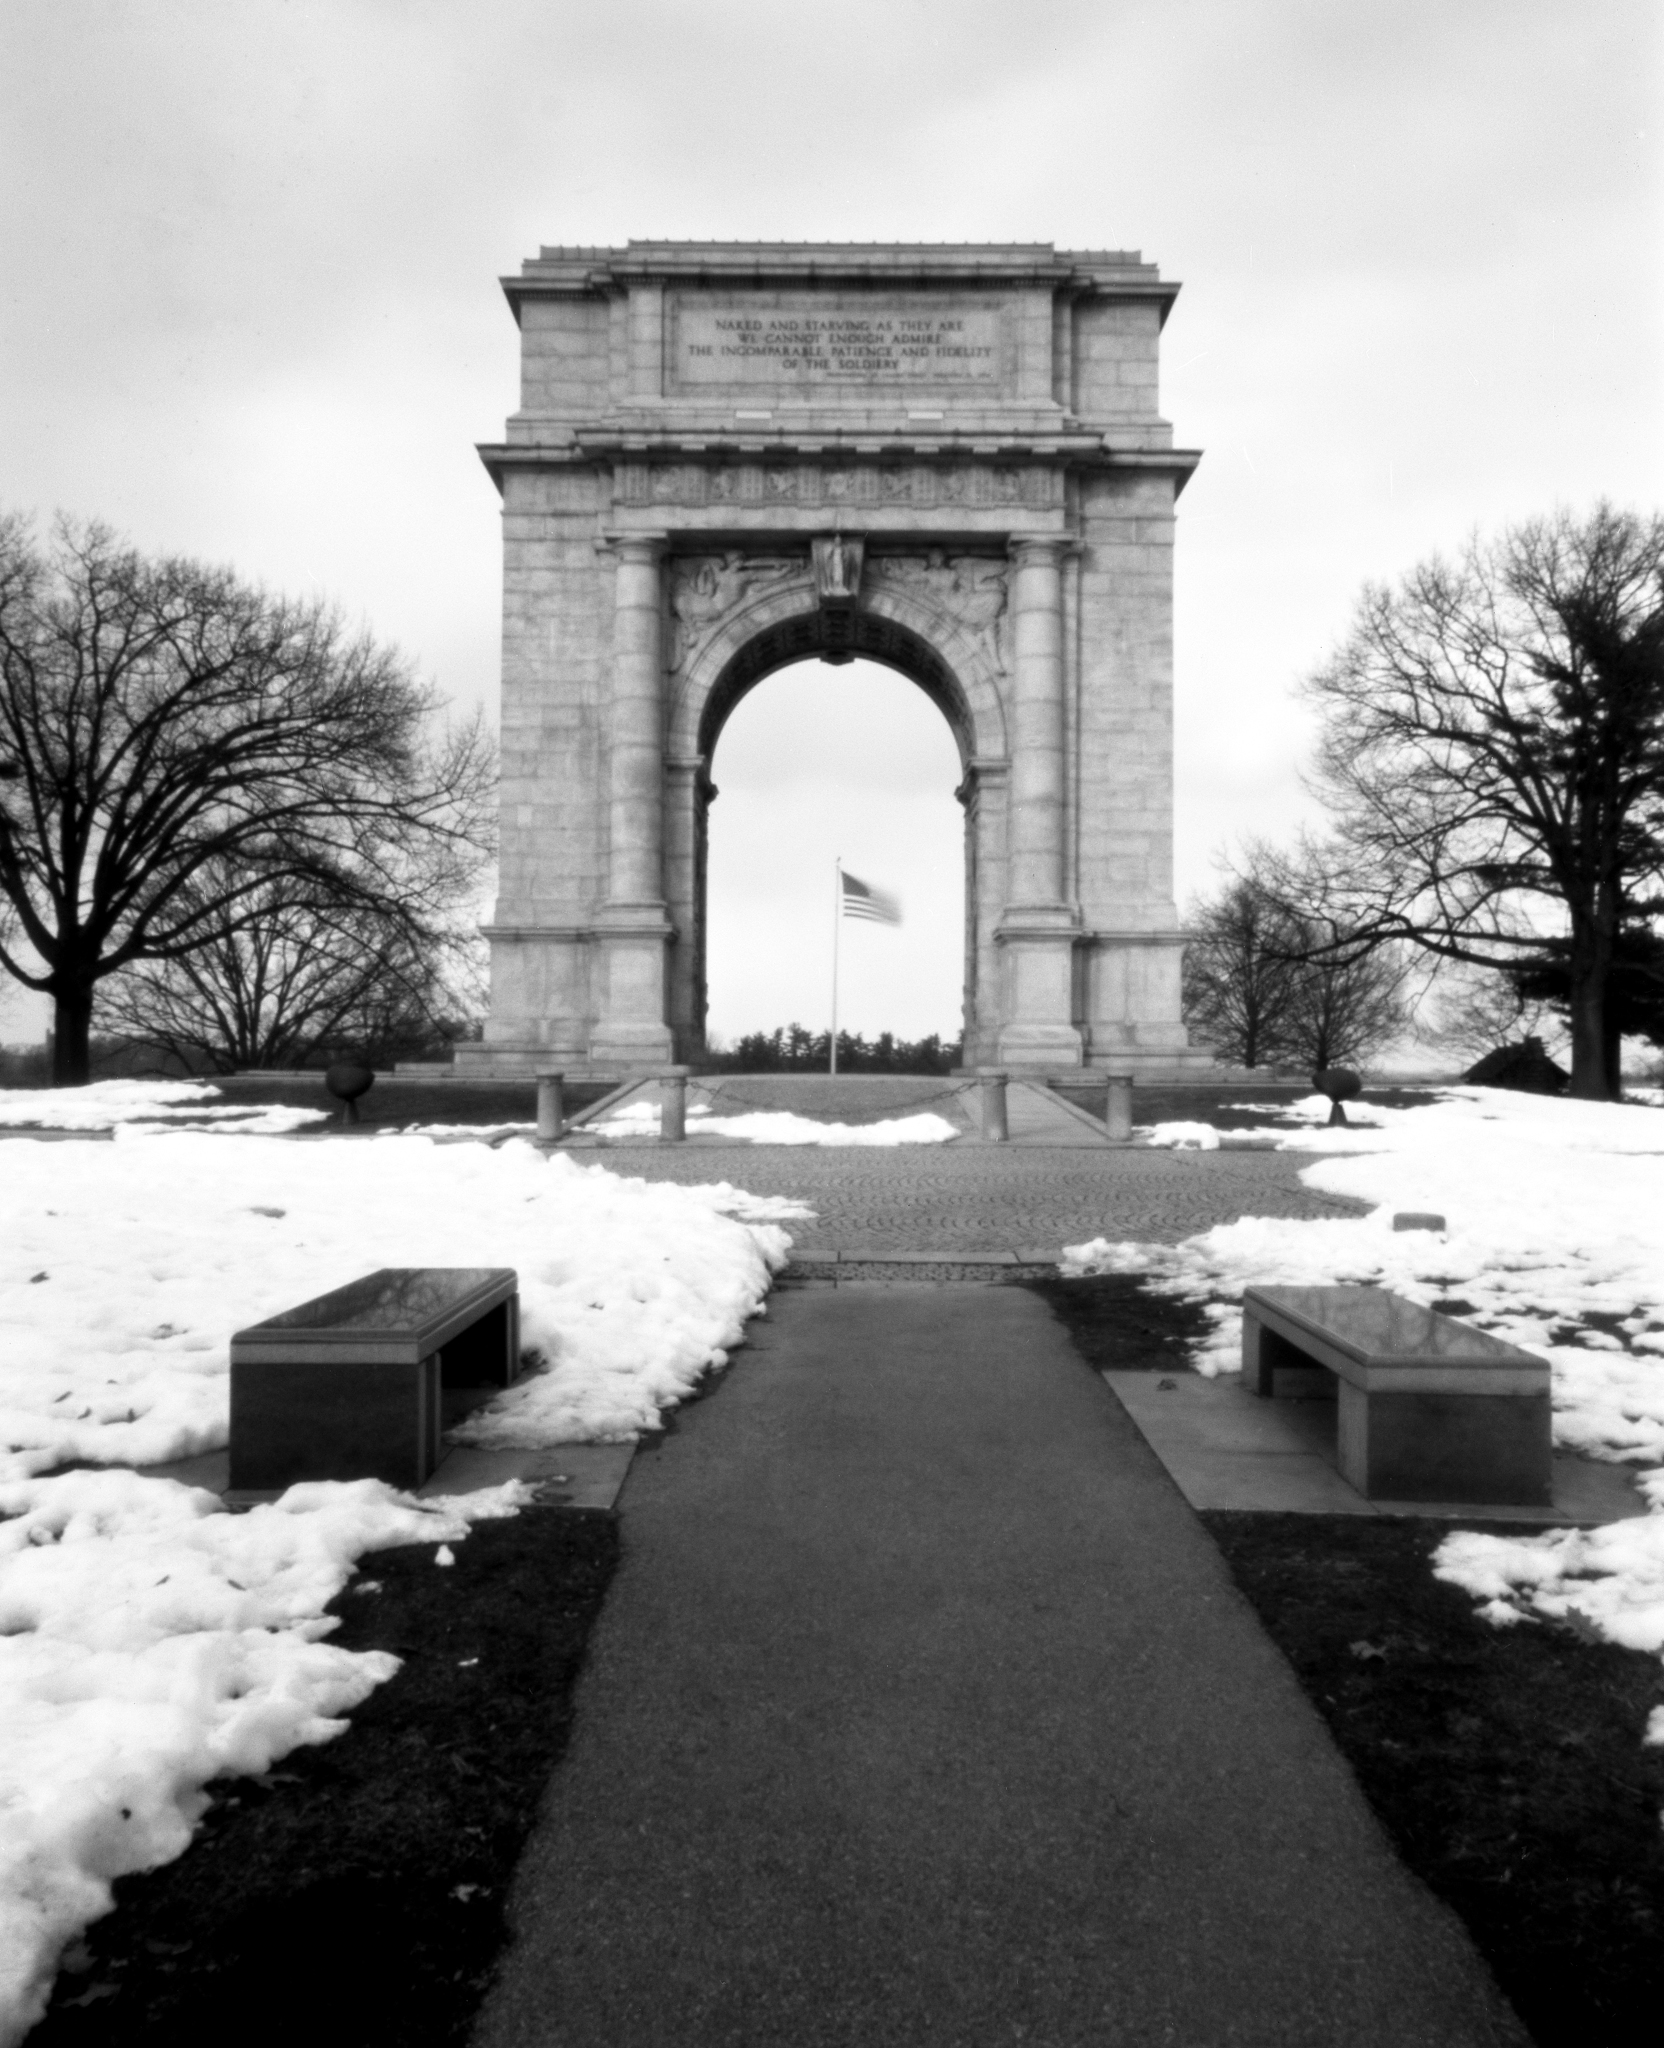 4x5_for_365_project_055_Valley_Forge_NHS_Arch.jpg